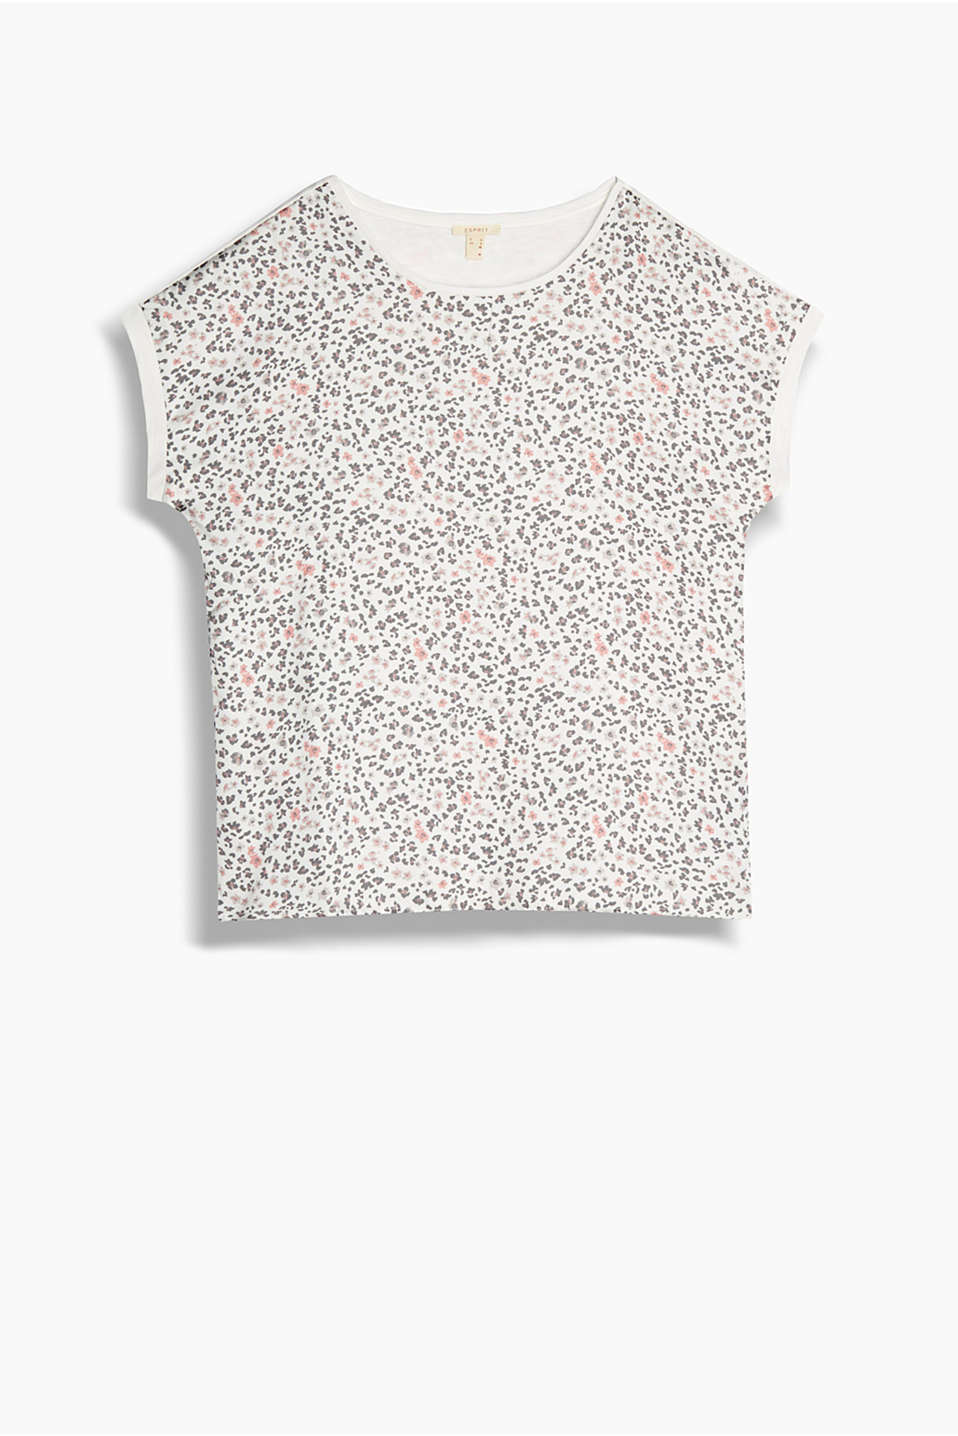 Floral print blouse in a combination of fluid fabrics